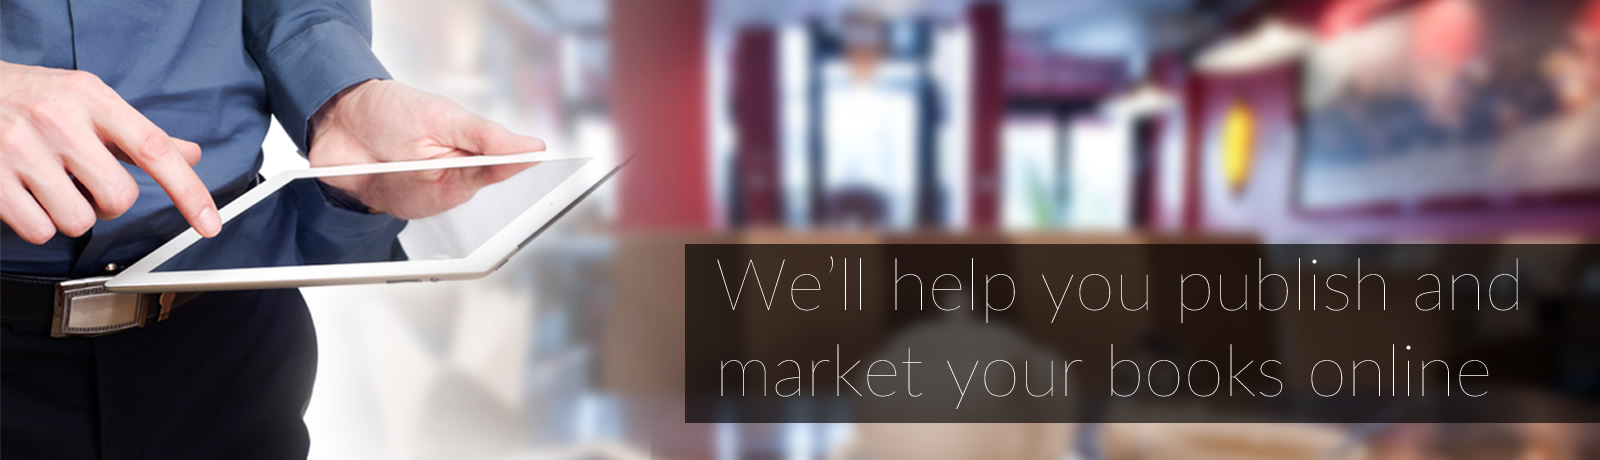 We'll help you publish and market your books online